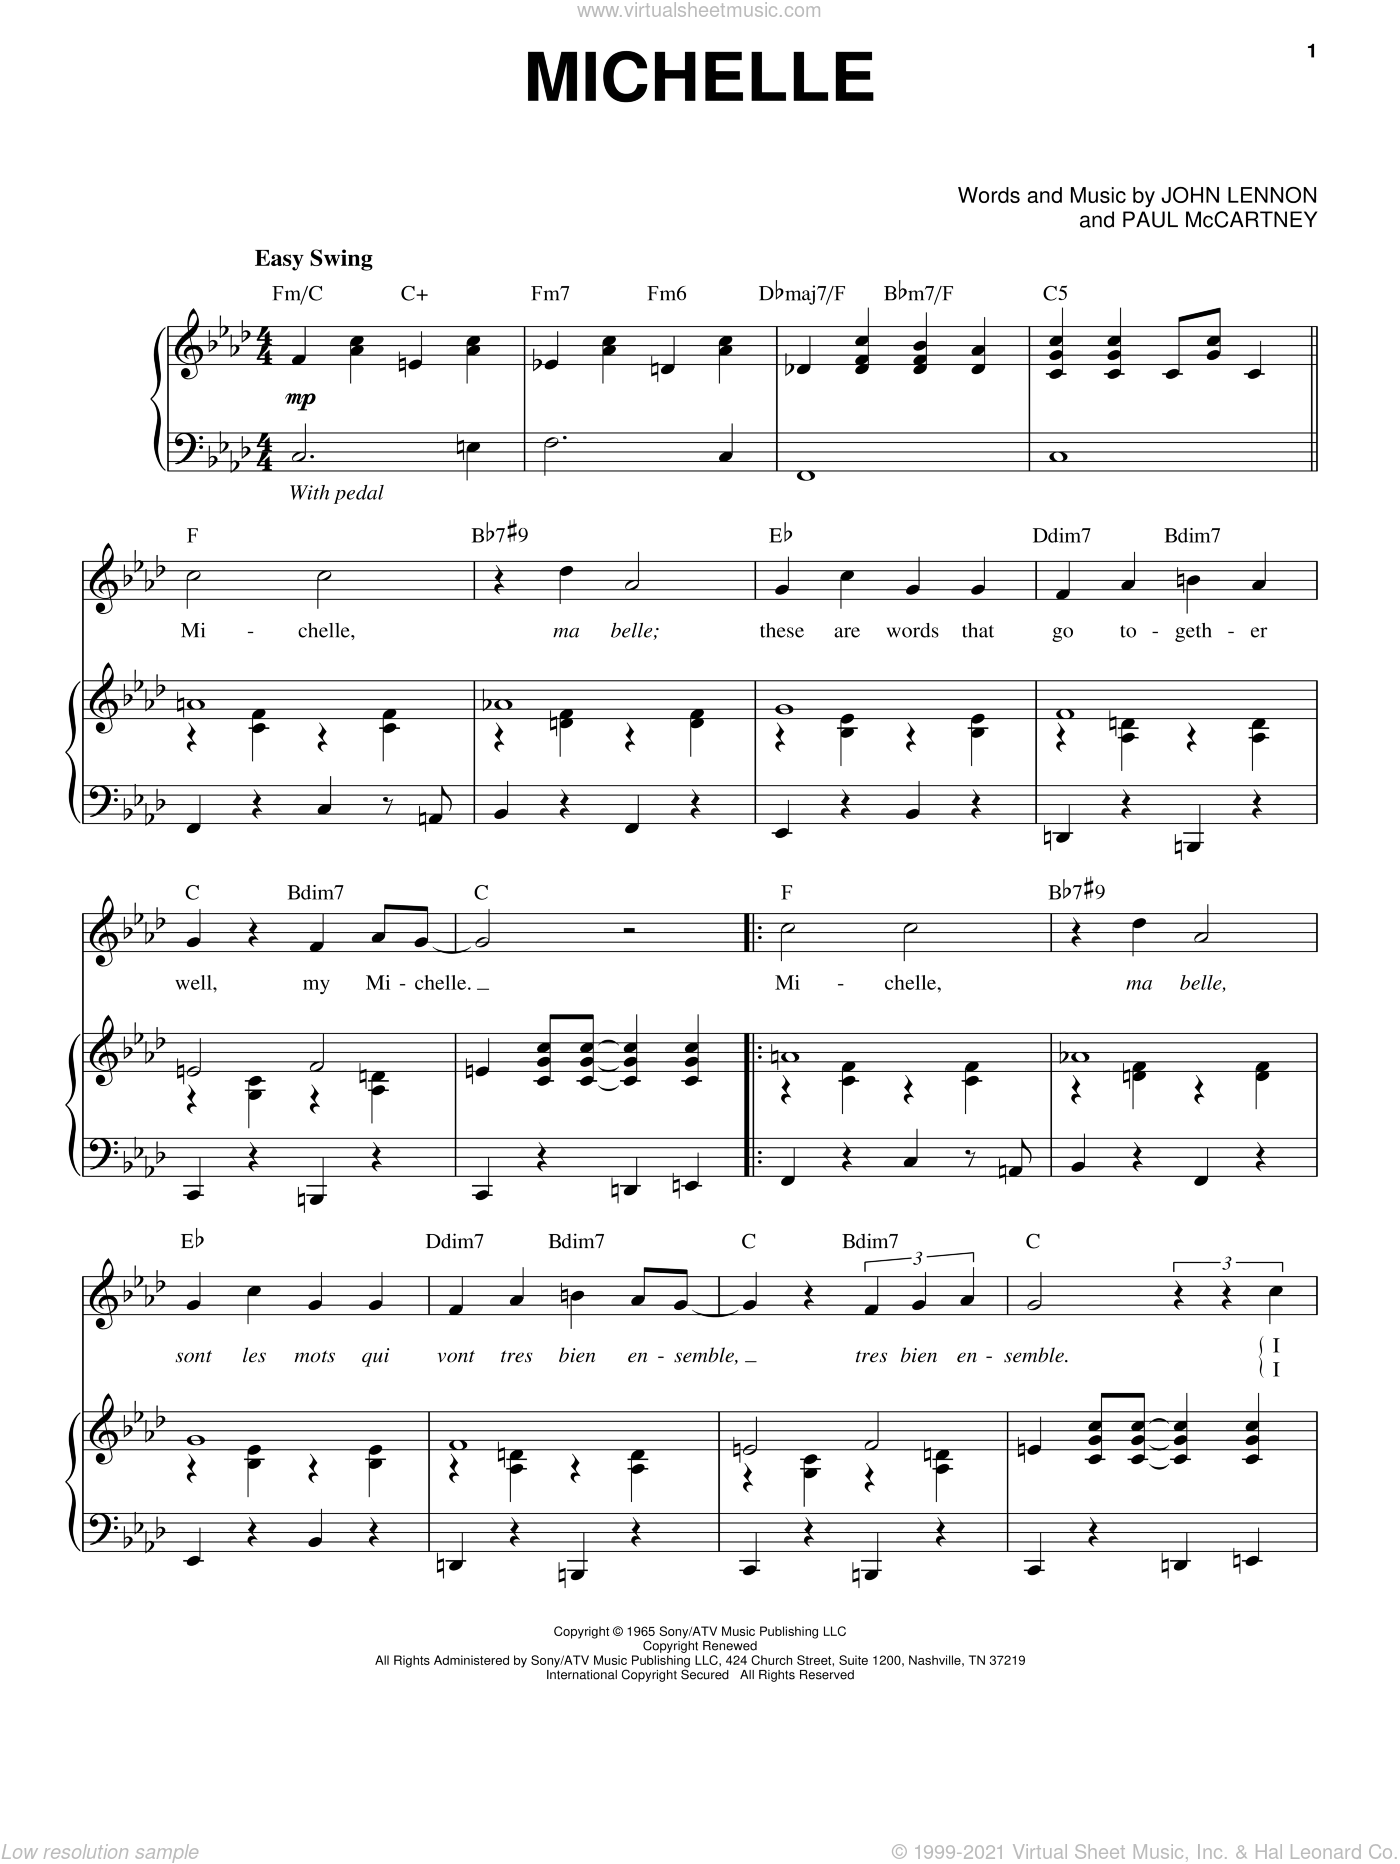 Michelle sheet music for voice and piano by The Beatles, John Lennon and Paul McCartney, intermediate skill level